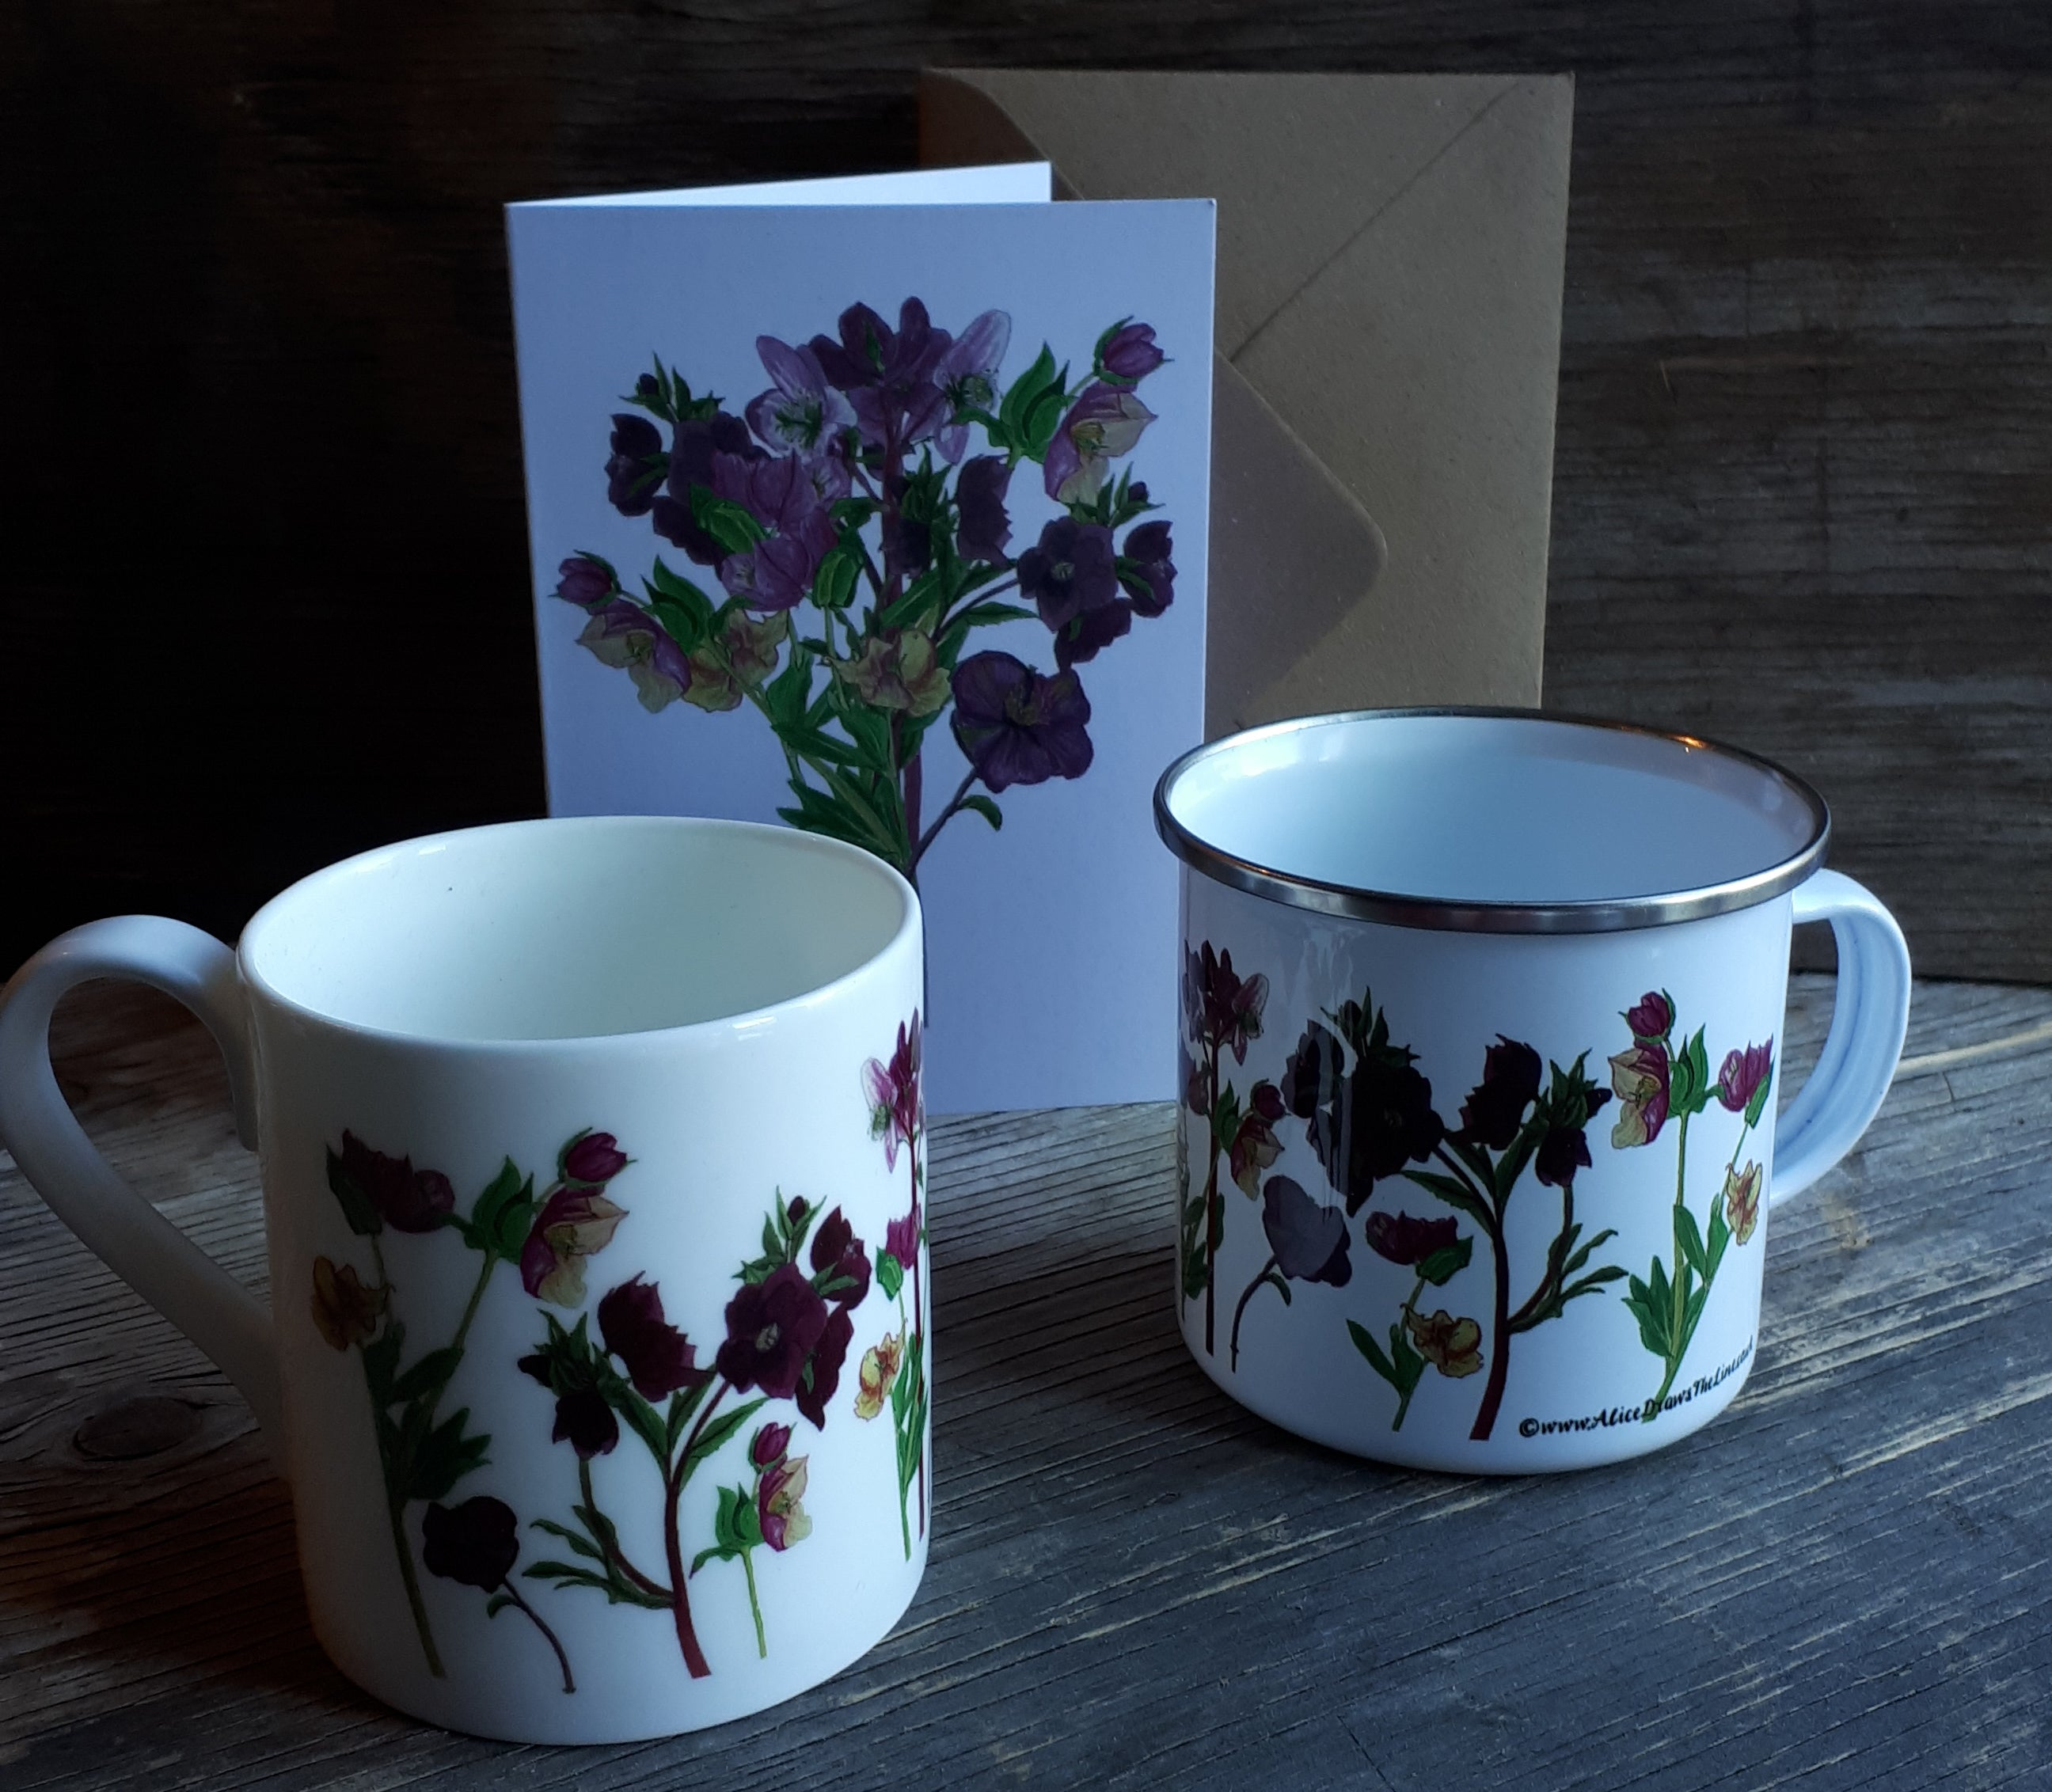 The Hellebore collection by Alice Draws the Line